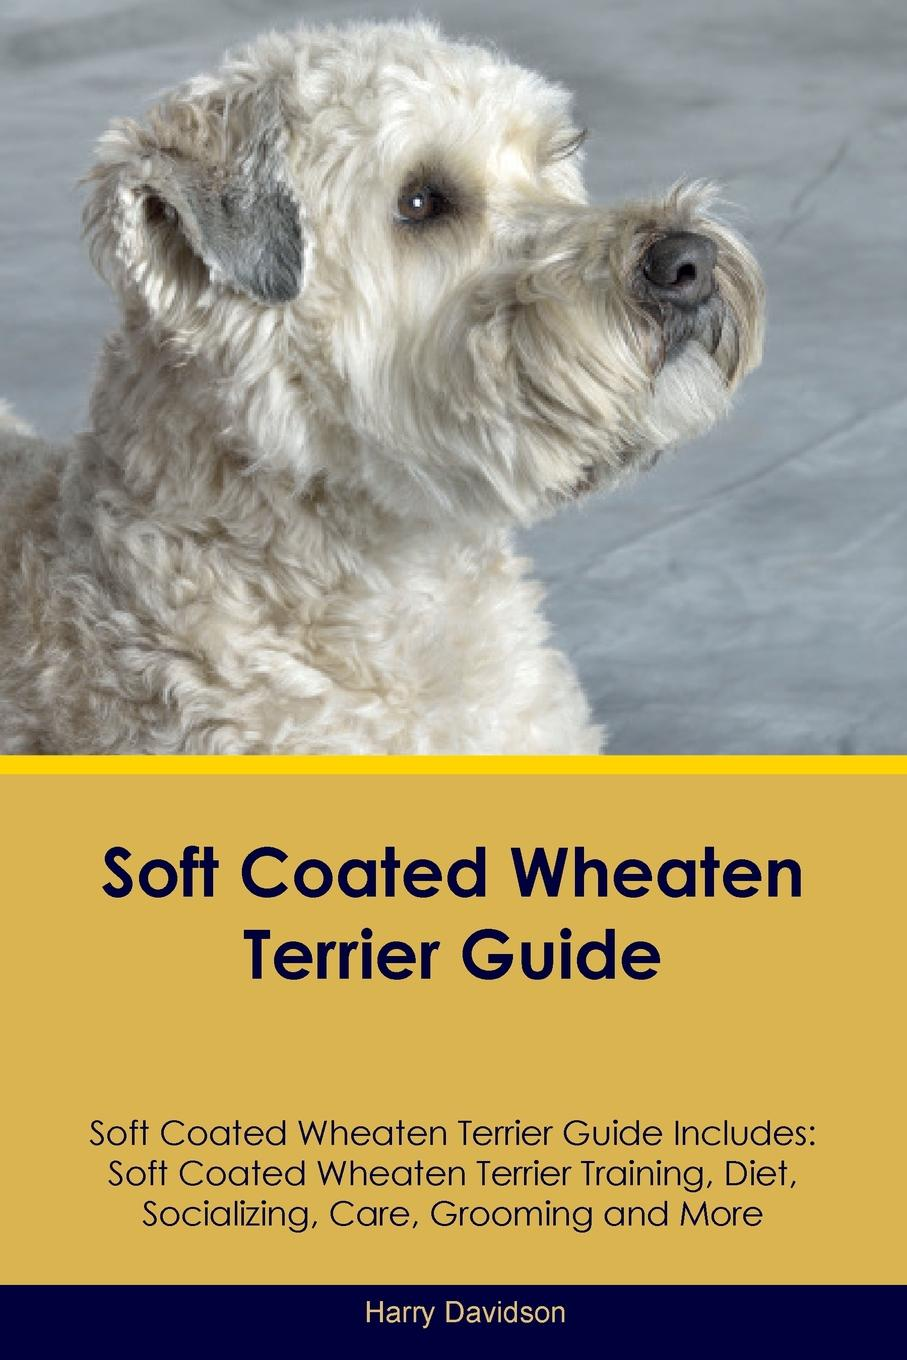 Harry Davidson Soft Coated Wheaten Terrier Guide Soft Coated Wheaten Terrier Guide Includes. Soft Coated Wheaten Terrier Training, Diet, Socializing, Care, Grooming, Breeding and More liner lock foldable knife with ttitanium coated